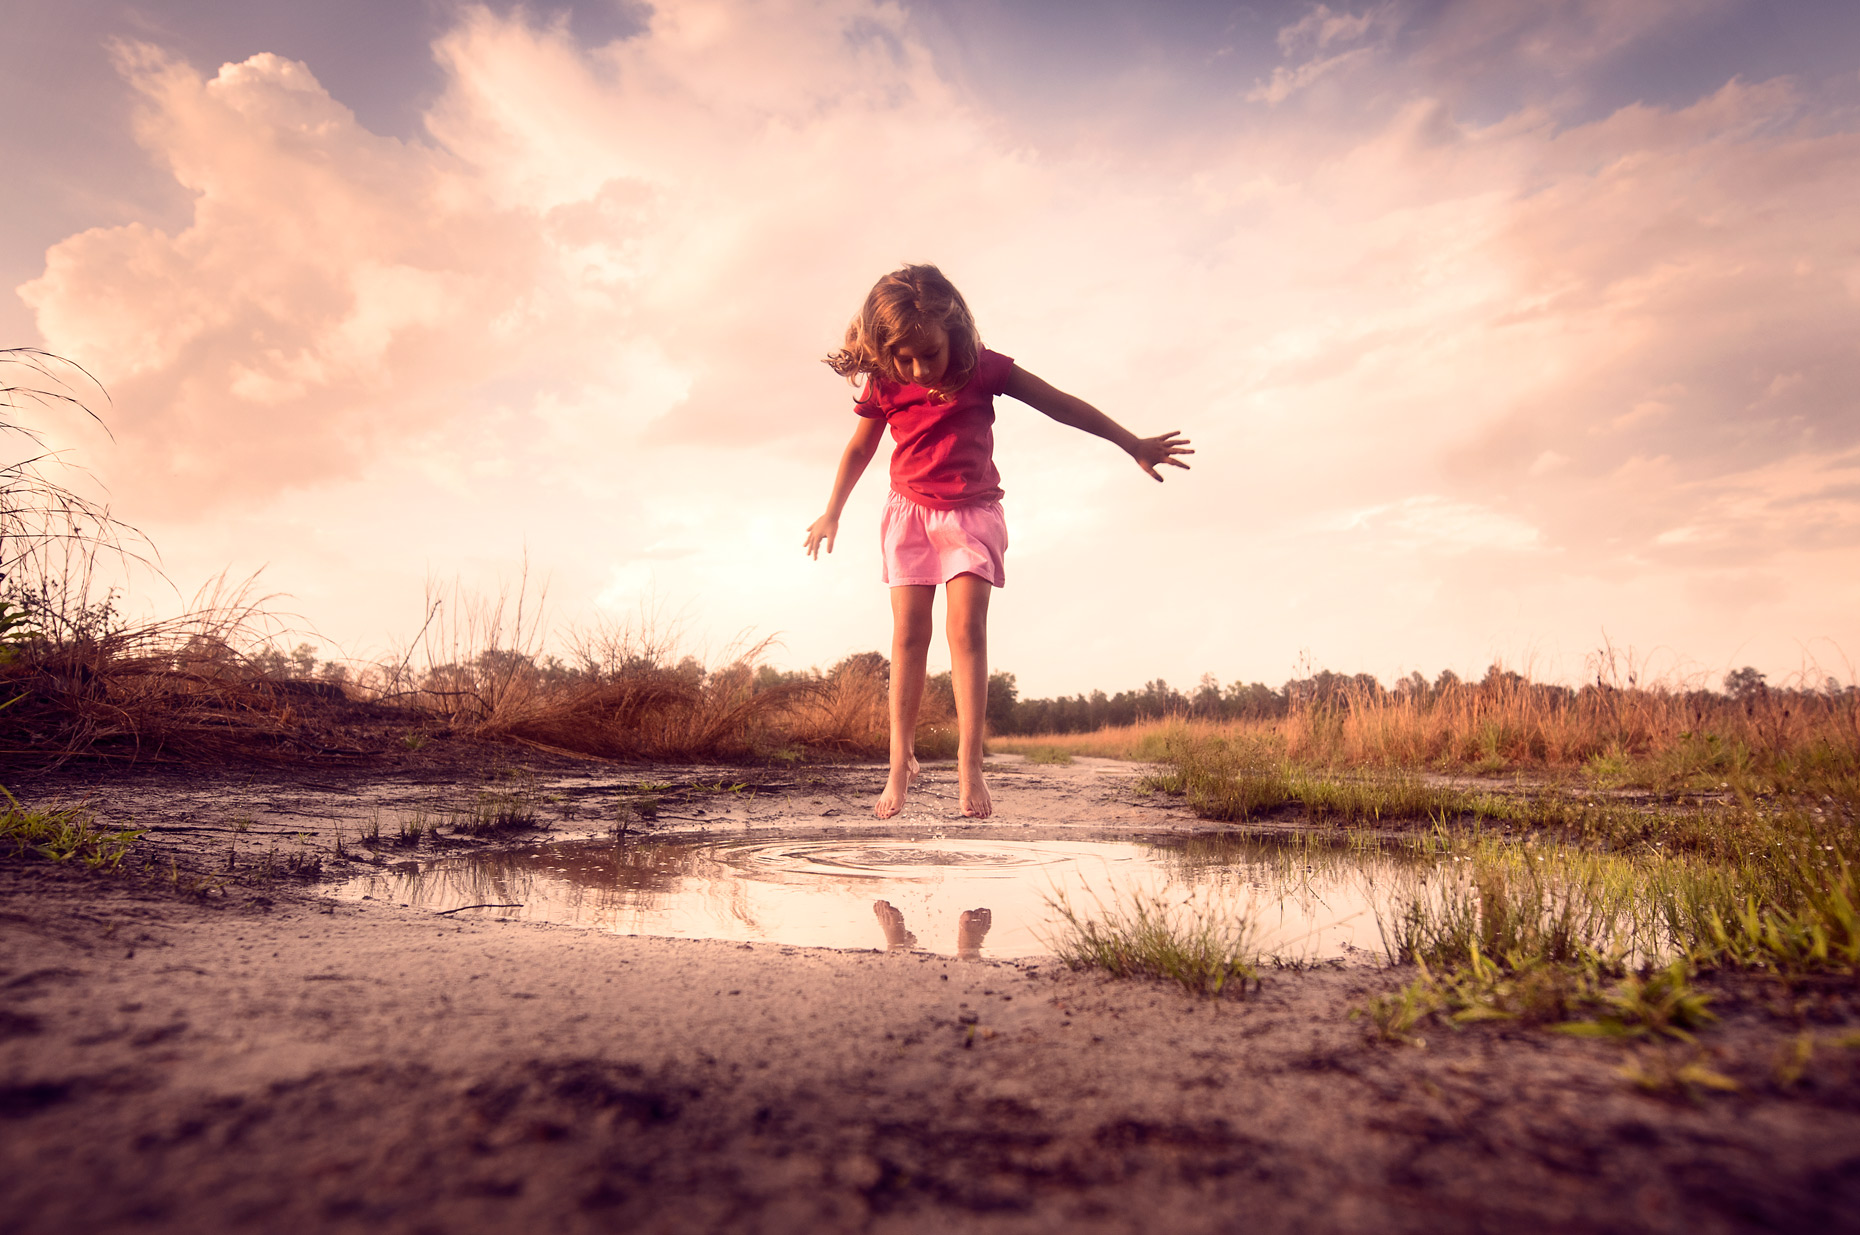 Campaign-girl-jumping-in-puddle